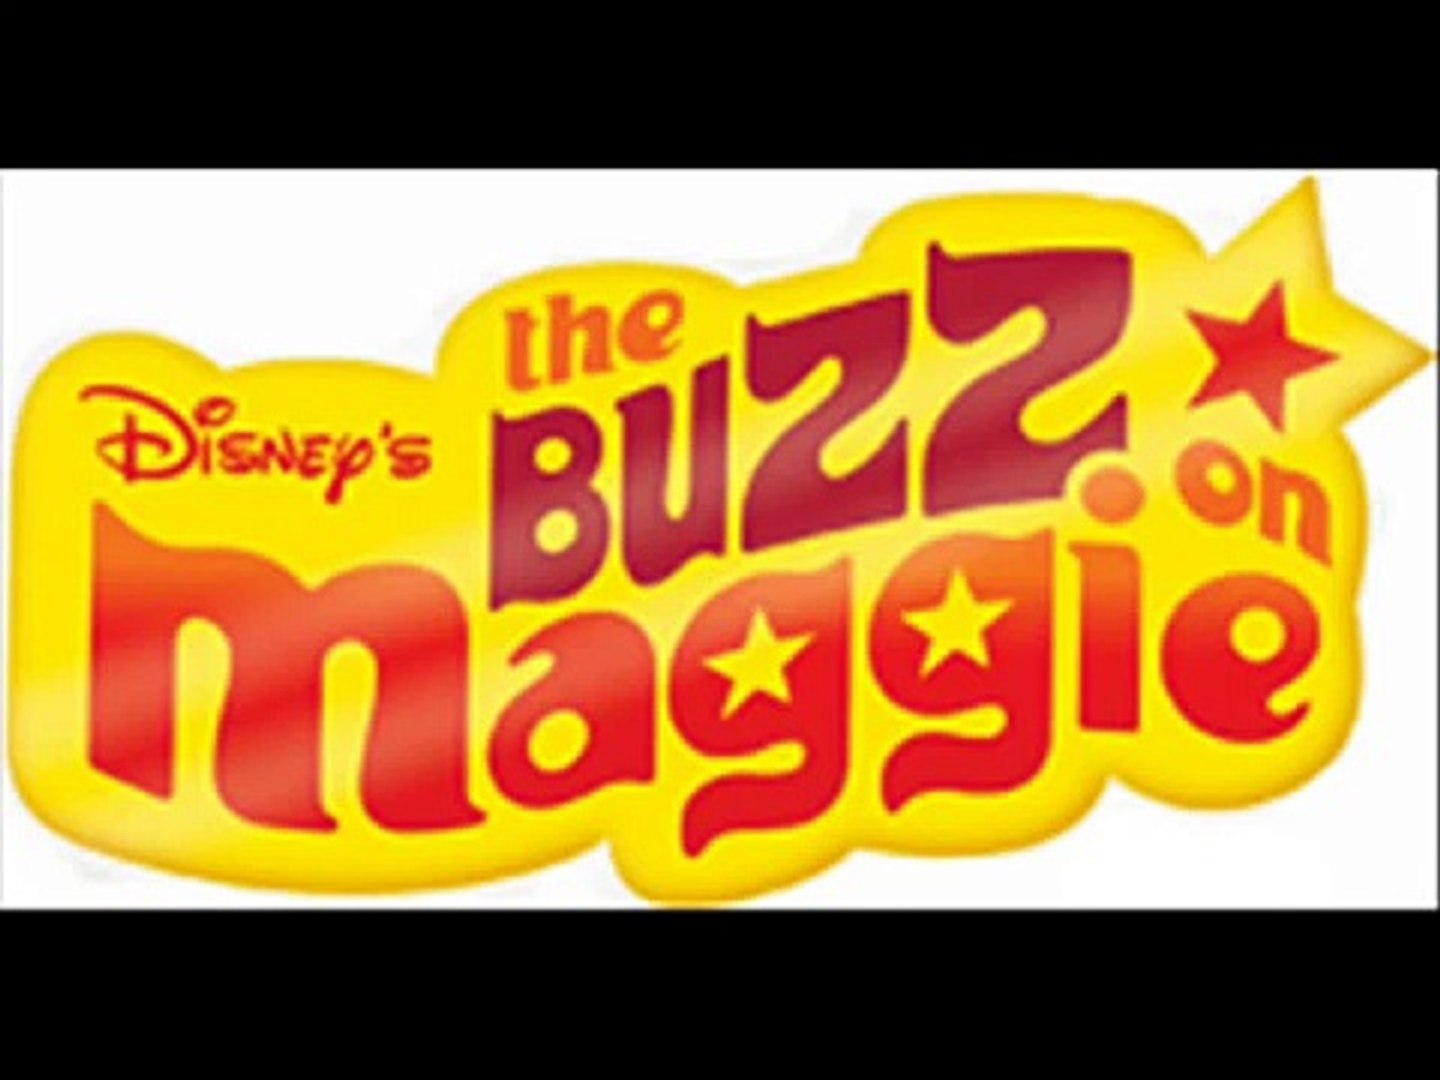 The Buzz On Maggie Funding Credits Video Dailymotion Disney channel, the buzz on maggie. the buzz on maggie funding credits